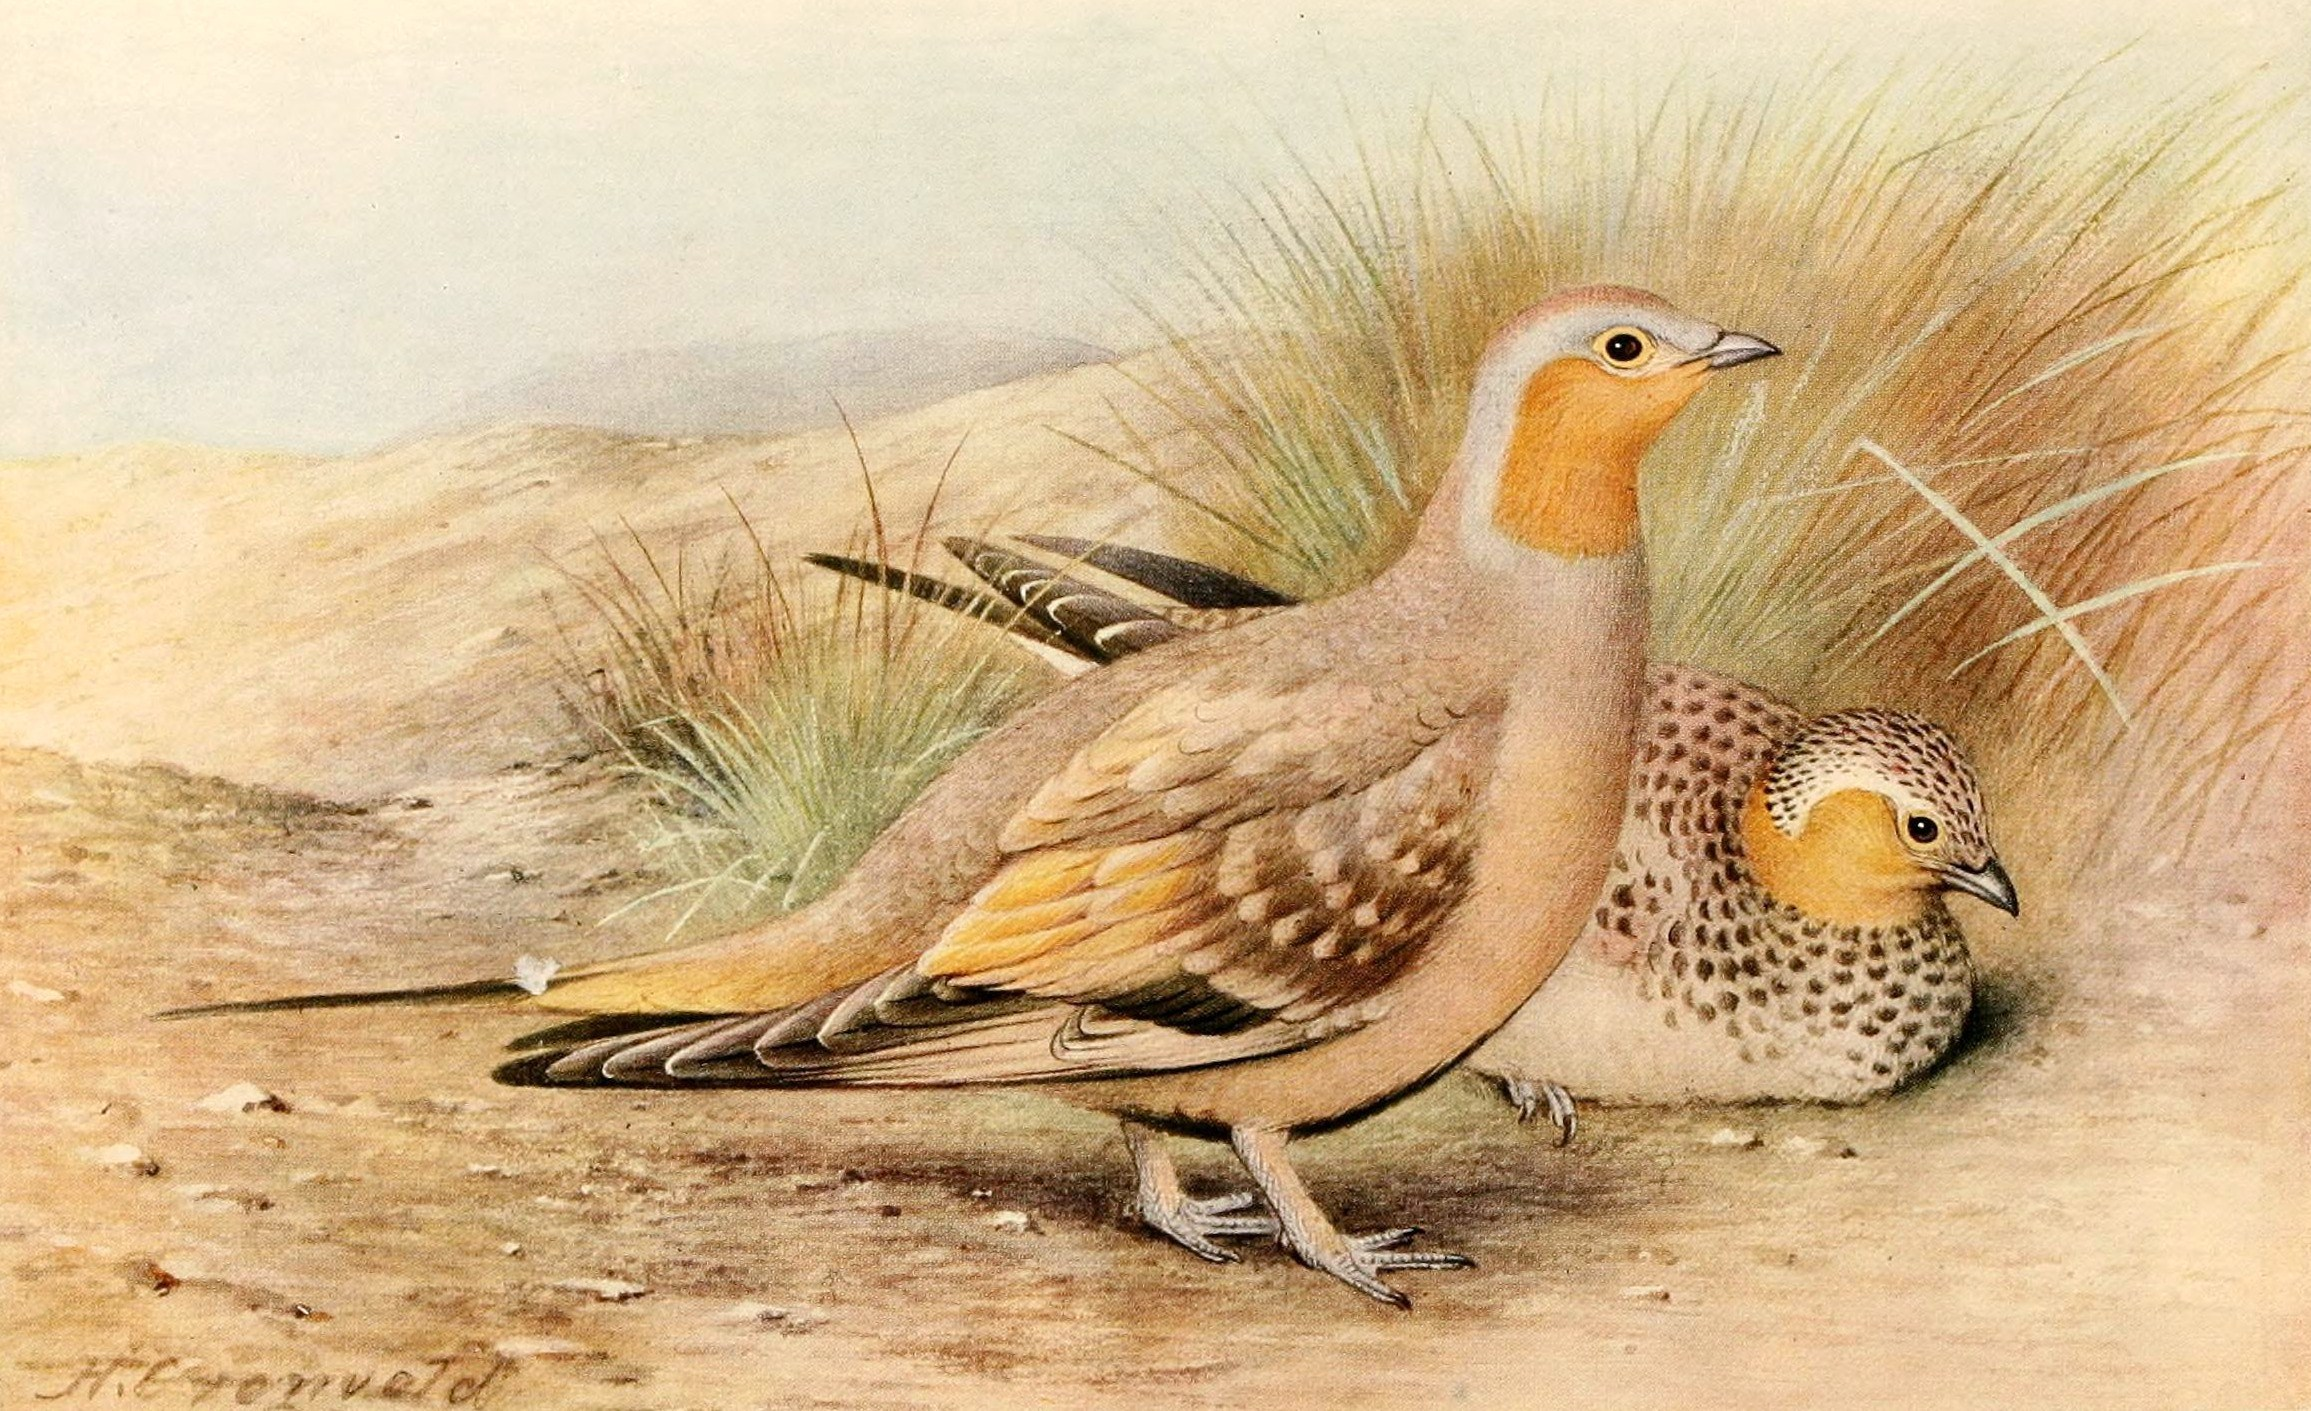 Image of Spotted Sandgrouse